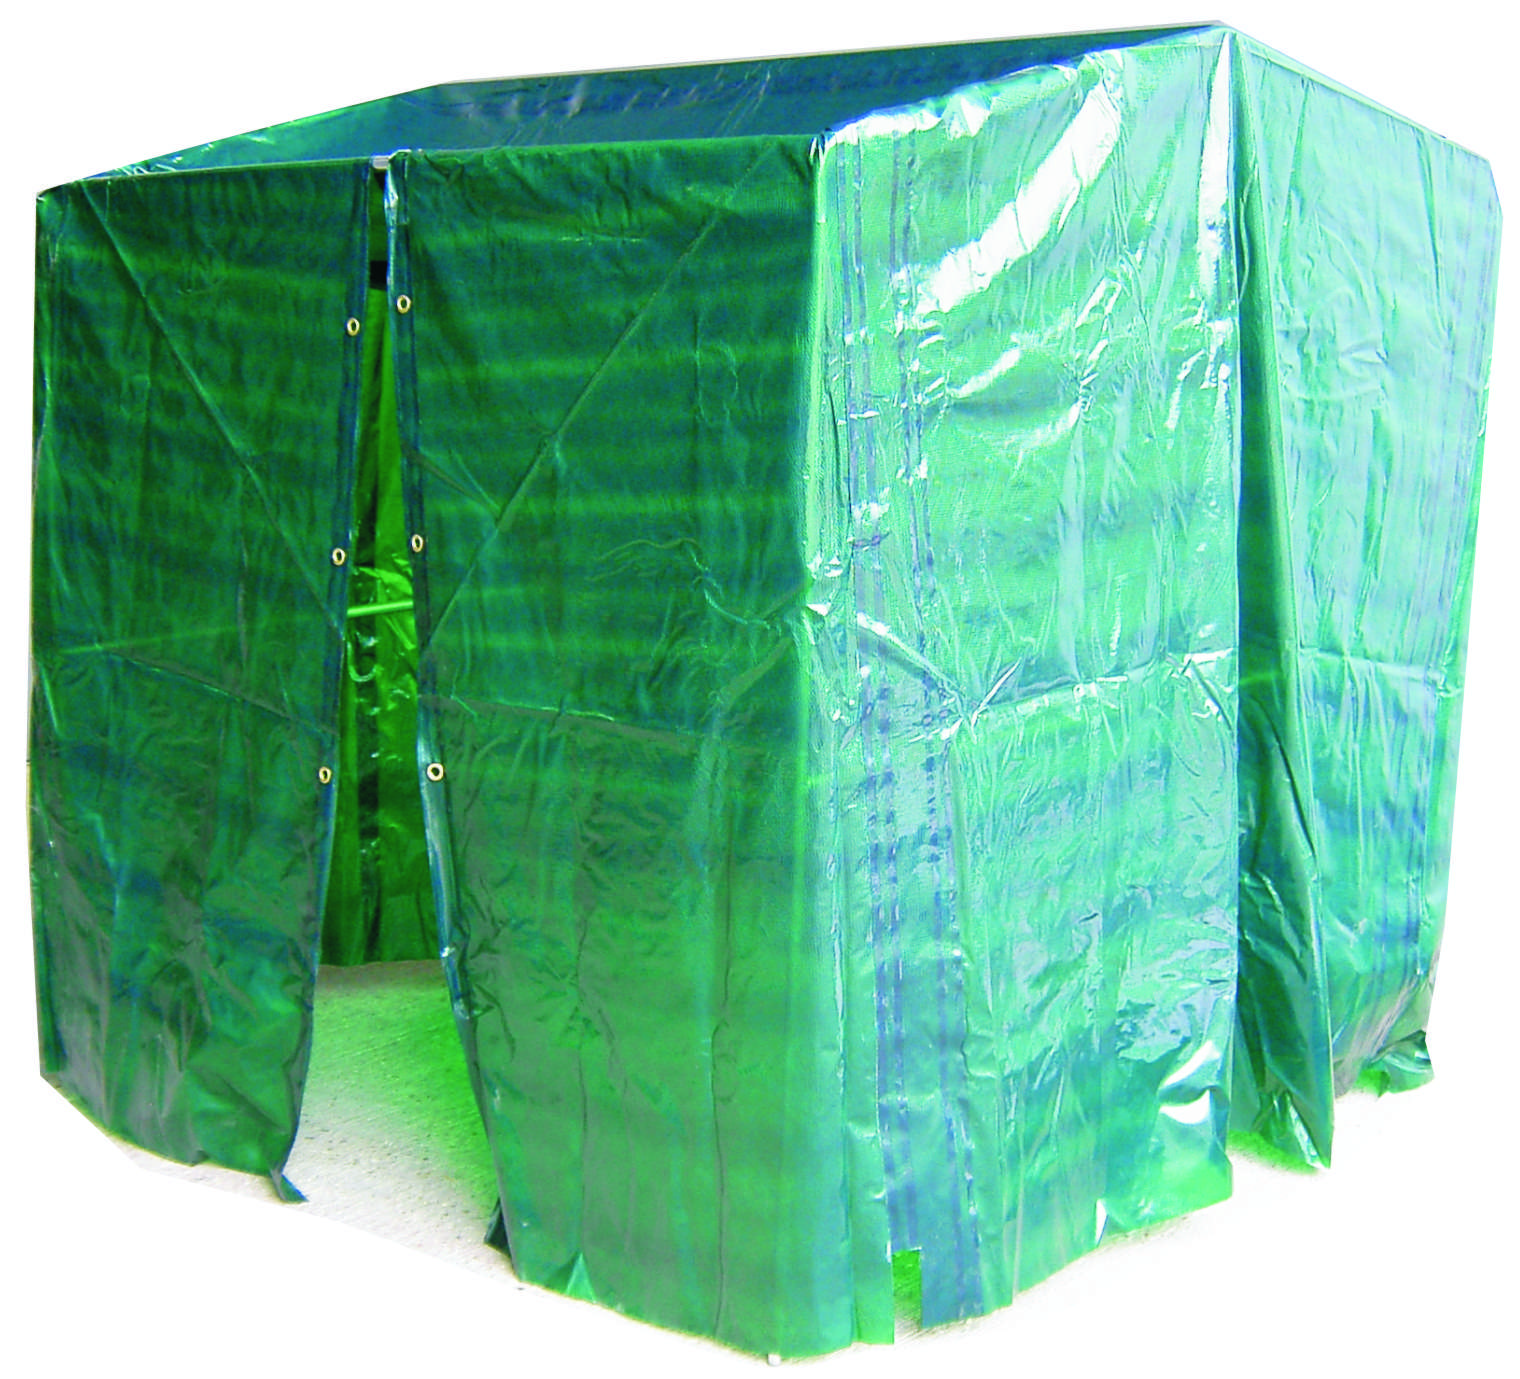 WORK SHELTER TRANS GREEN COVER